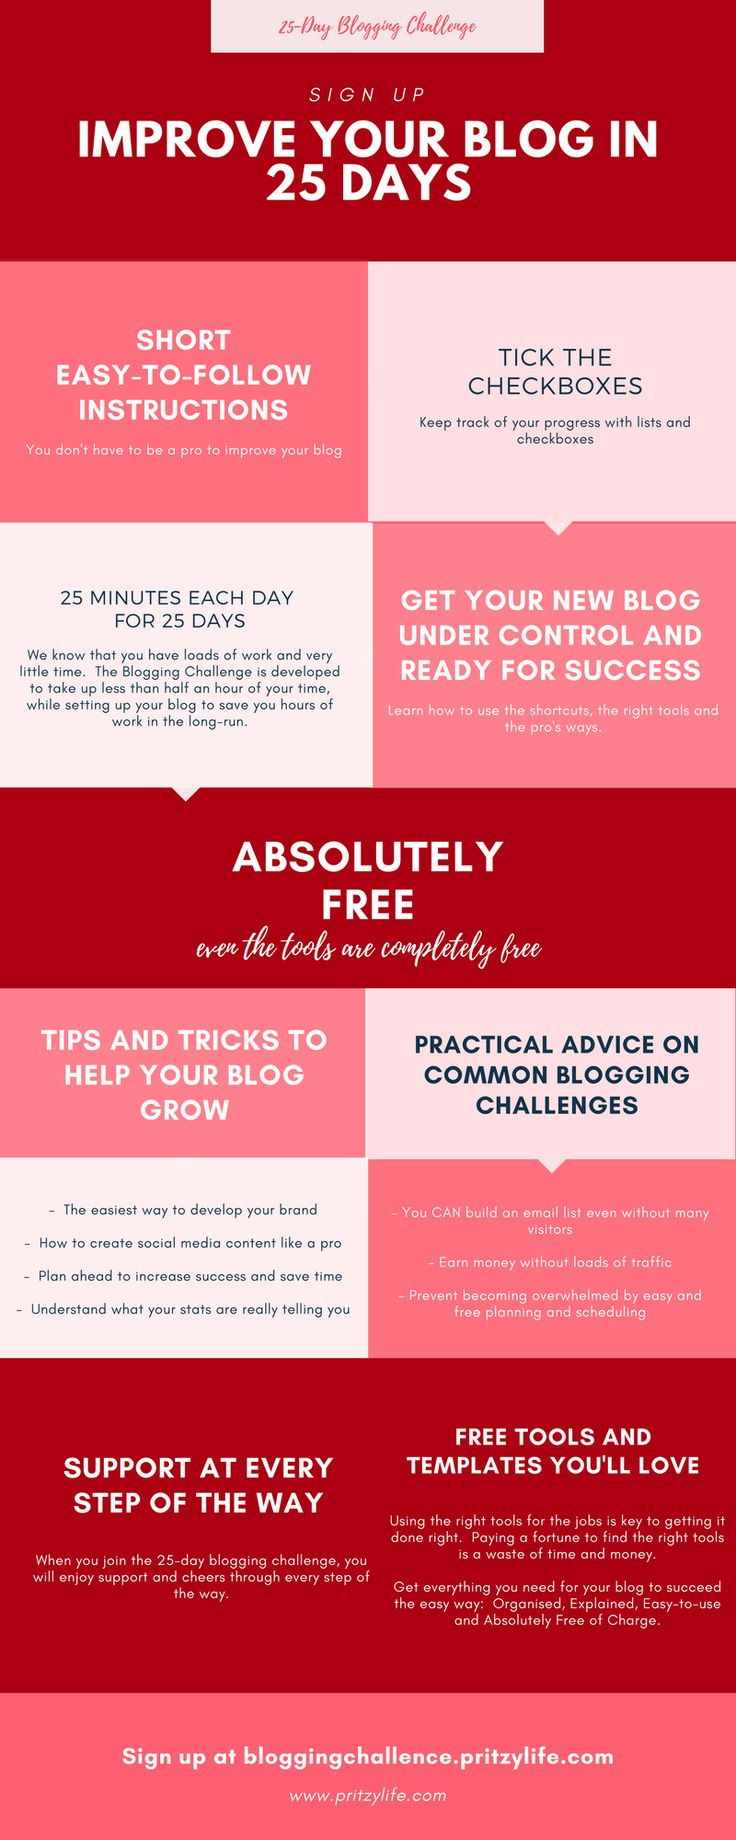 How to improve your new blog in 25 minutes each day for 25 days. 25-day blogging challenge infographic - how it works